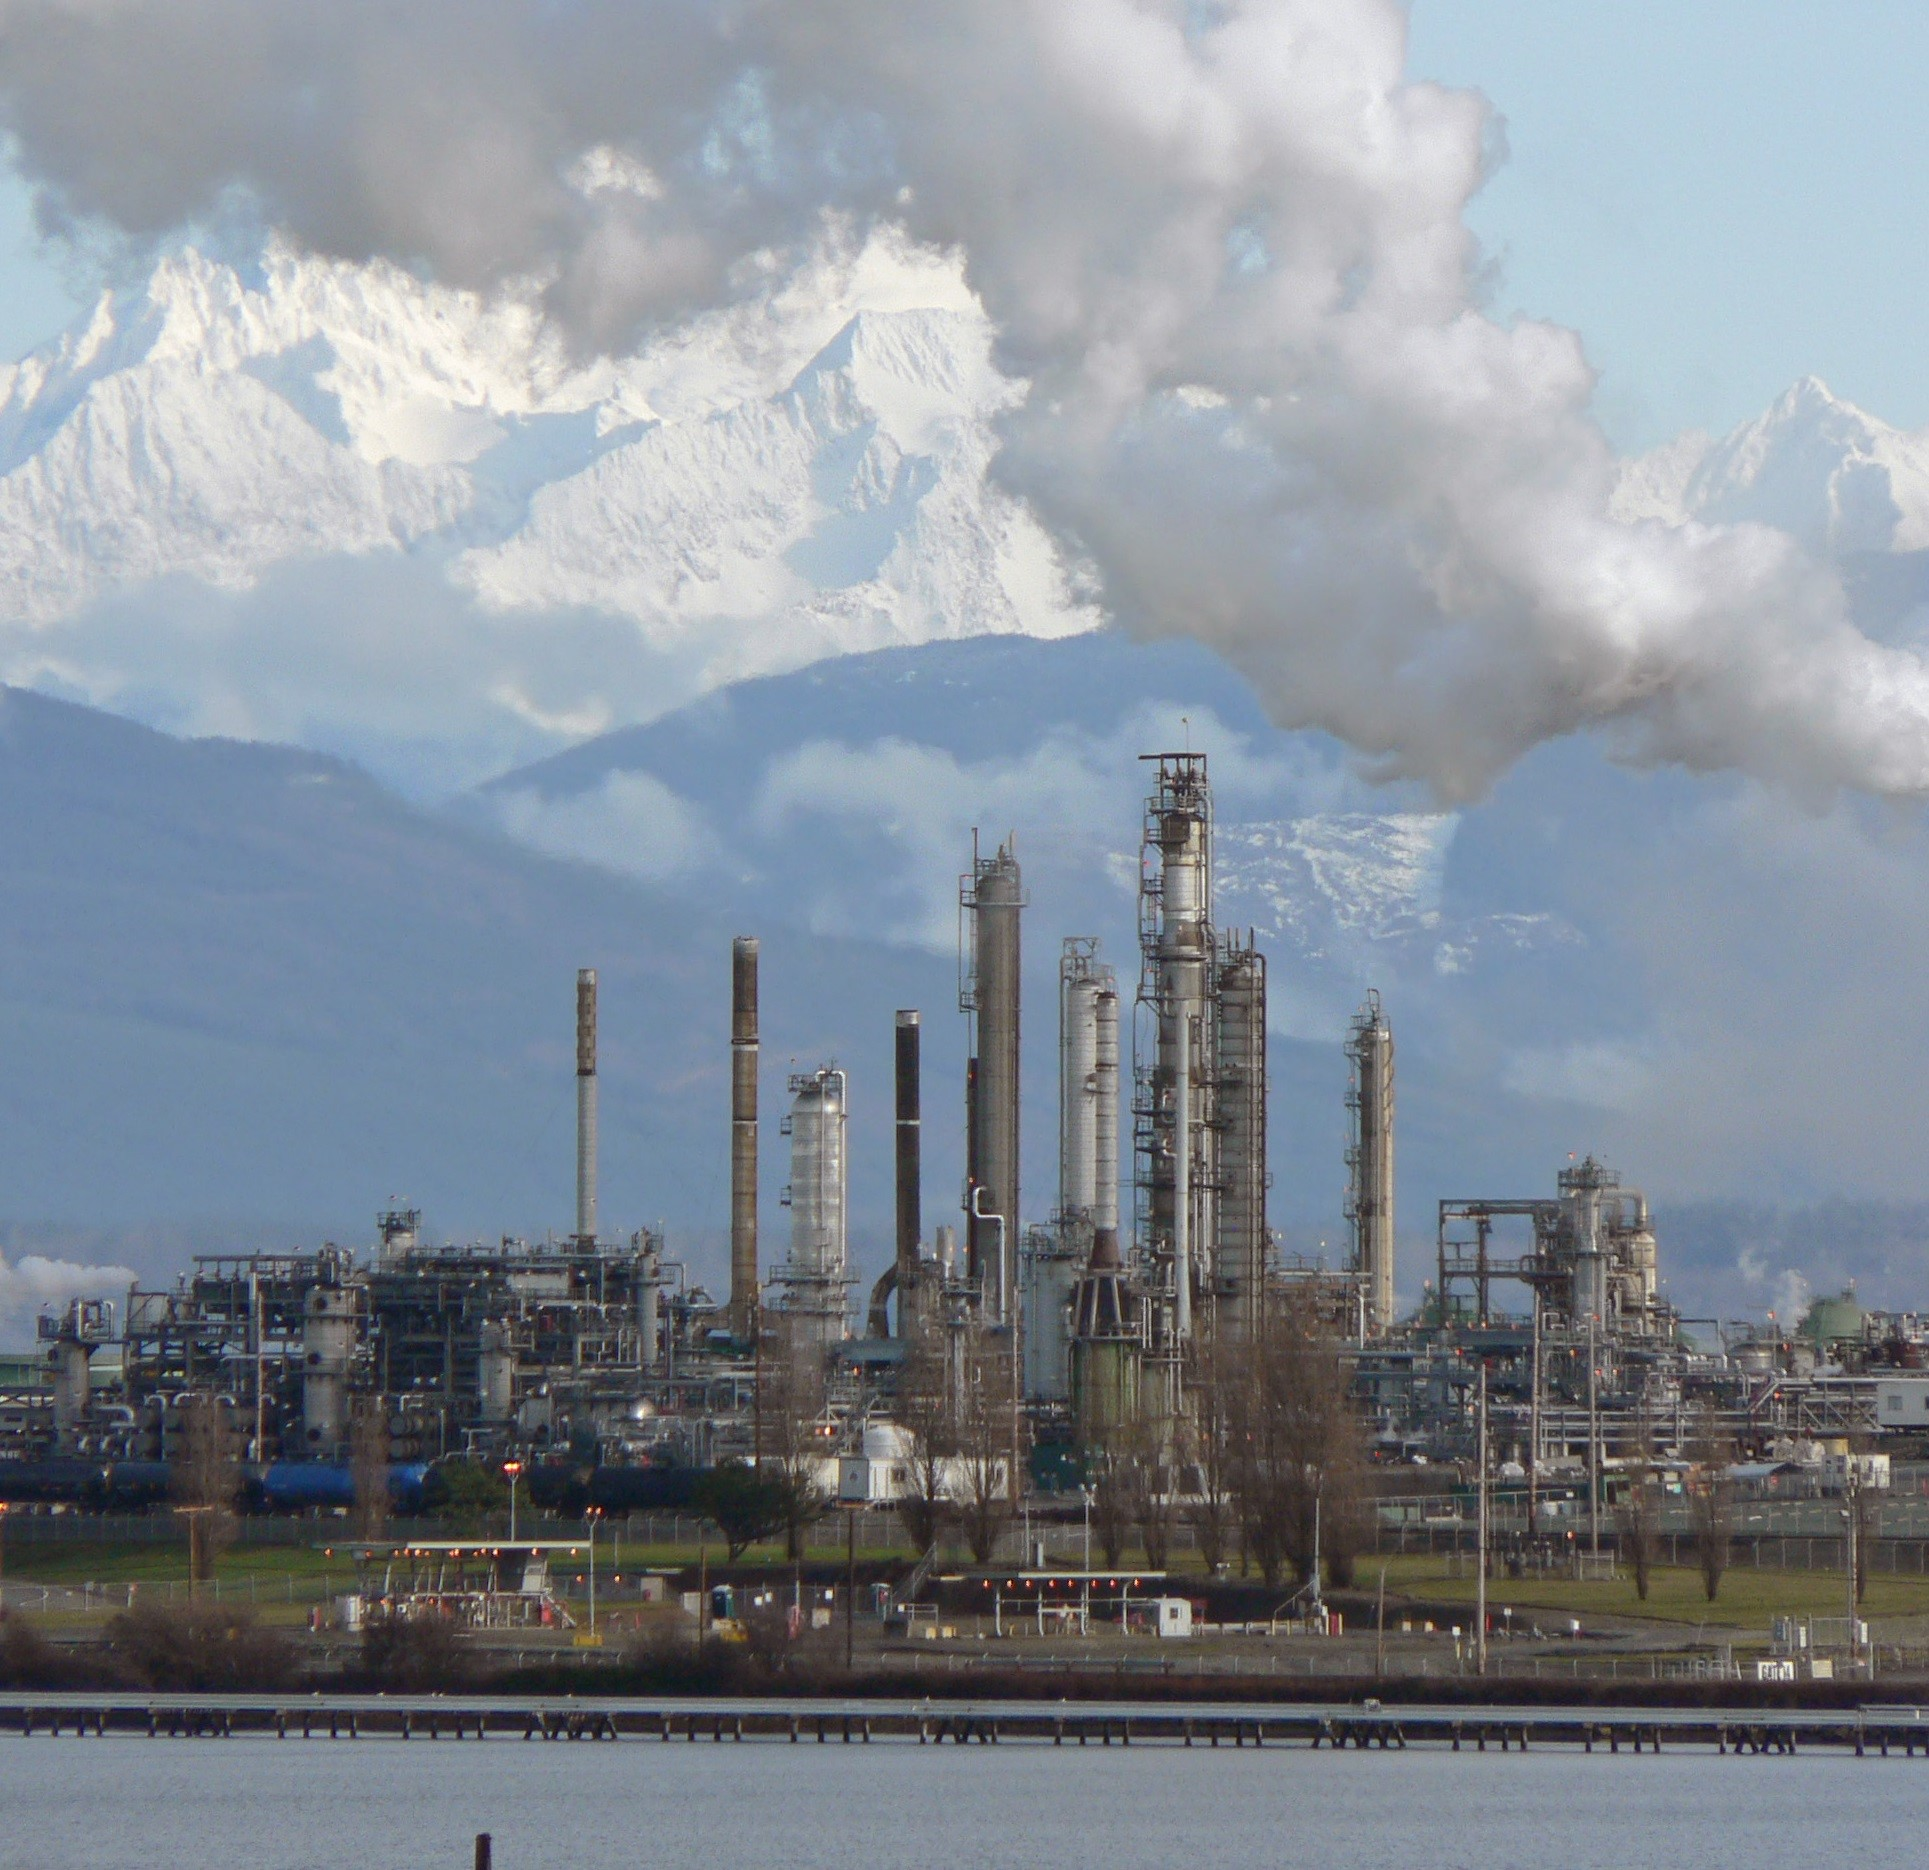 case research as well as environmentally friendly financial risk review for your petrochemical industry